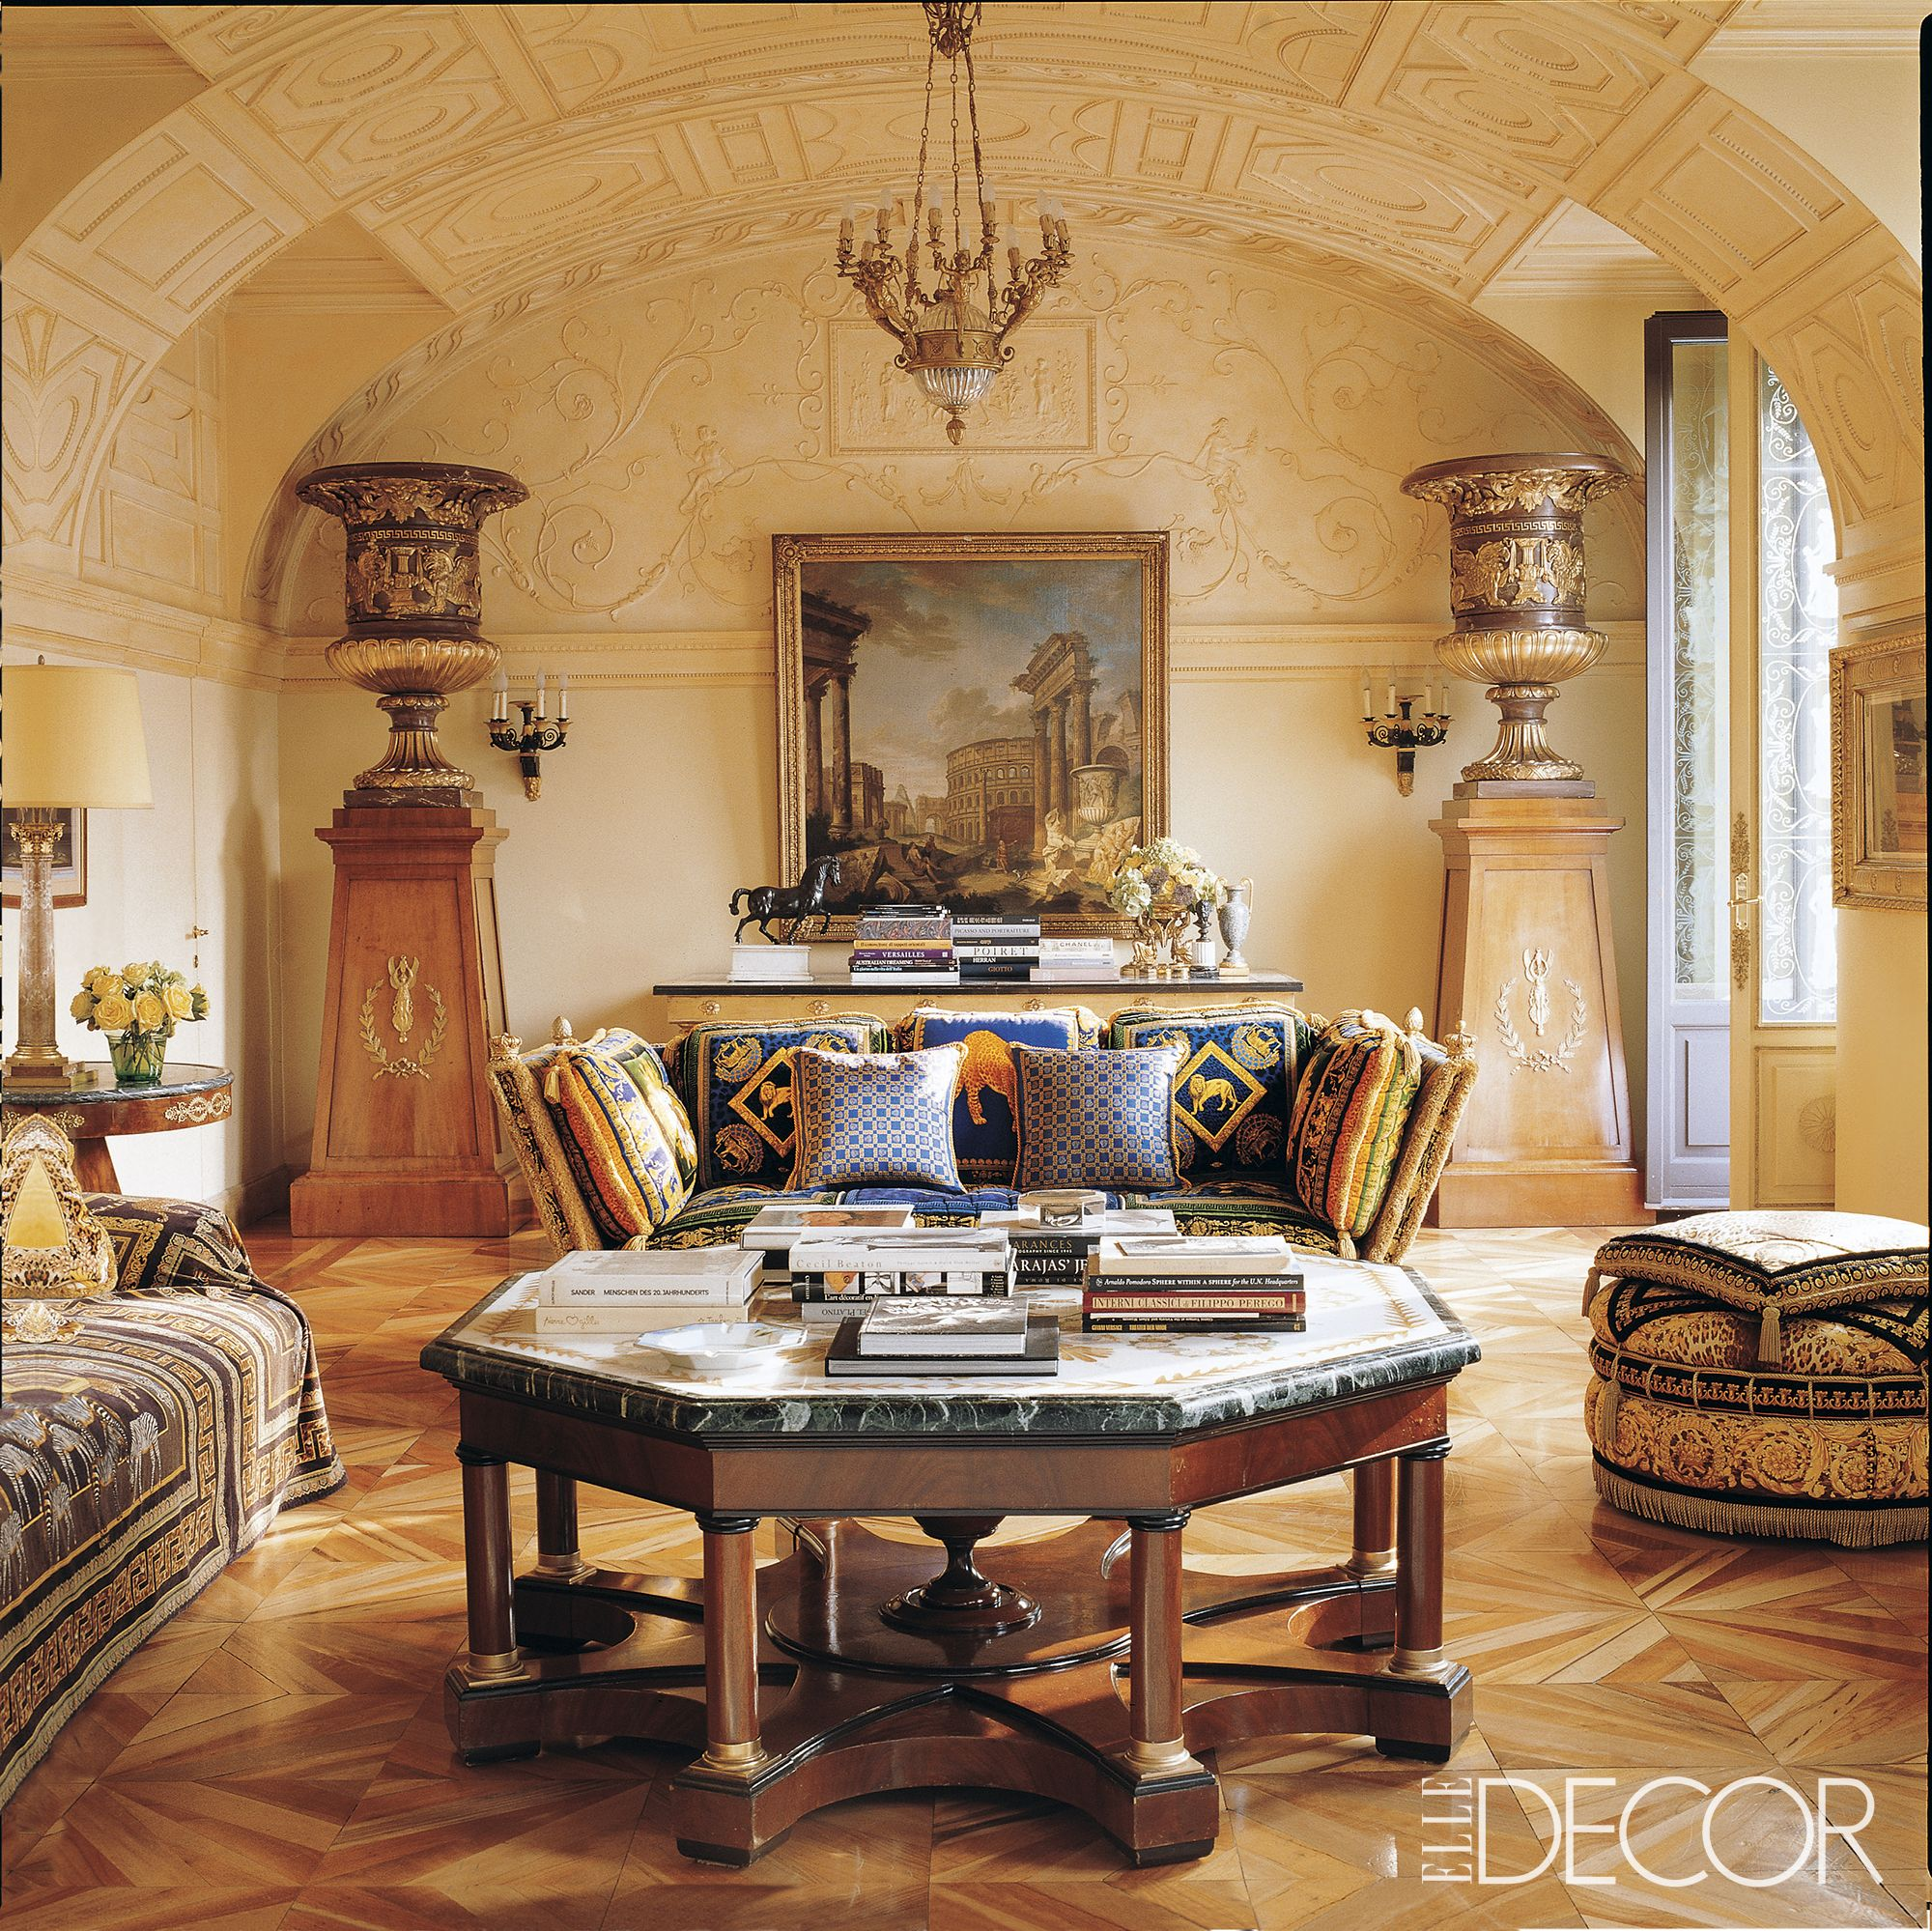 Fashion Designer Homes - How To Live Like A Fashion Designer